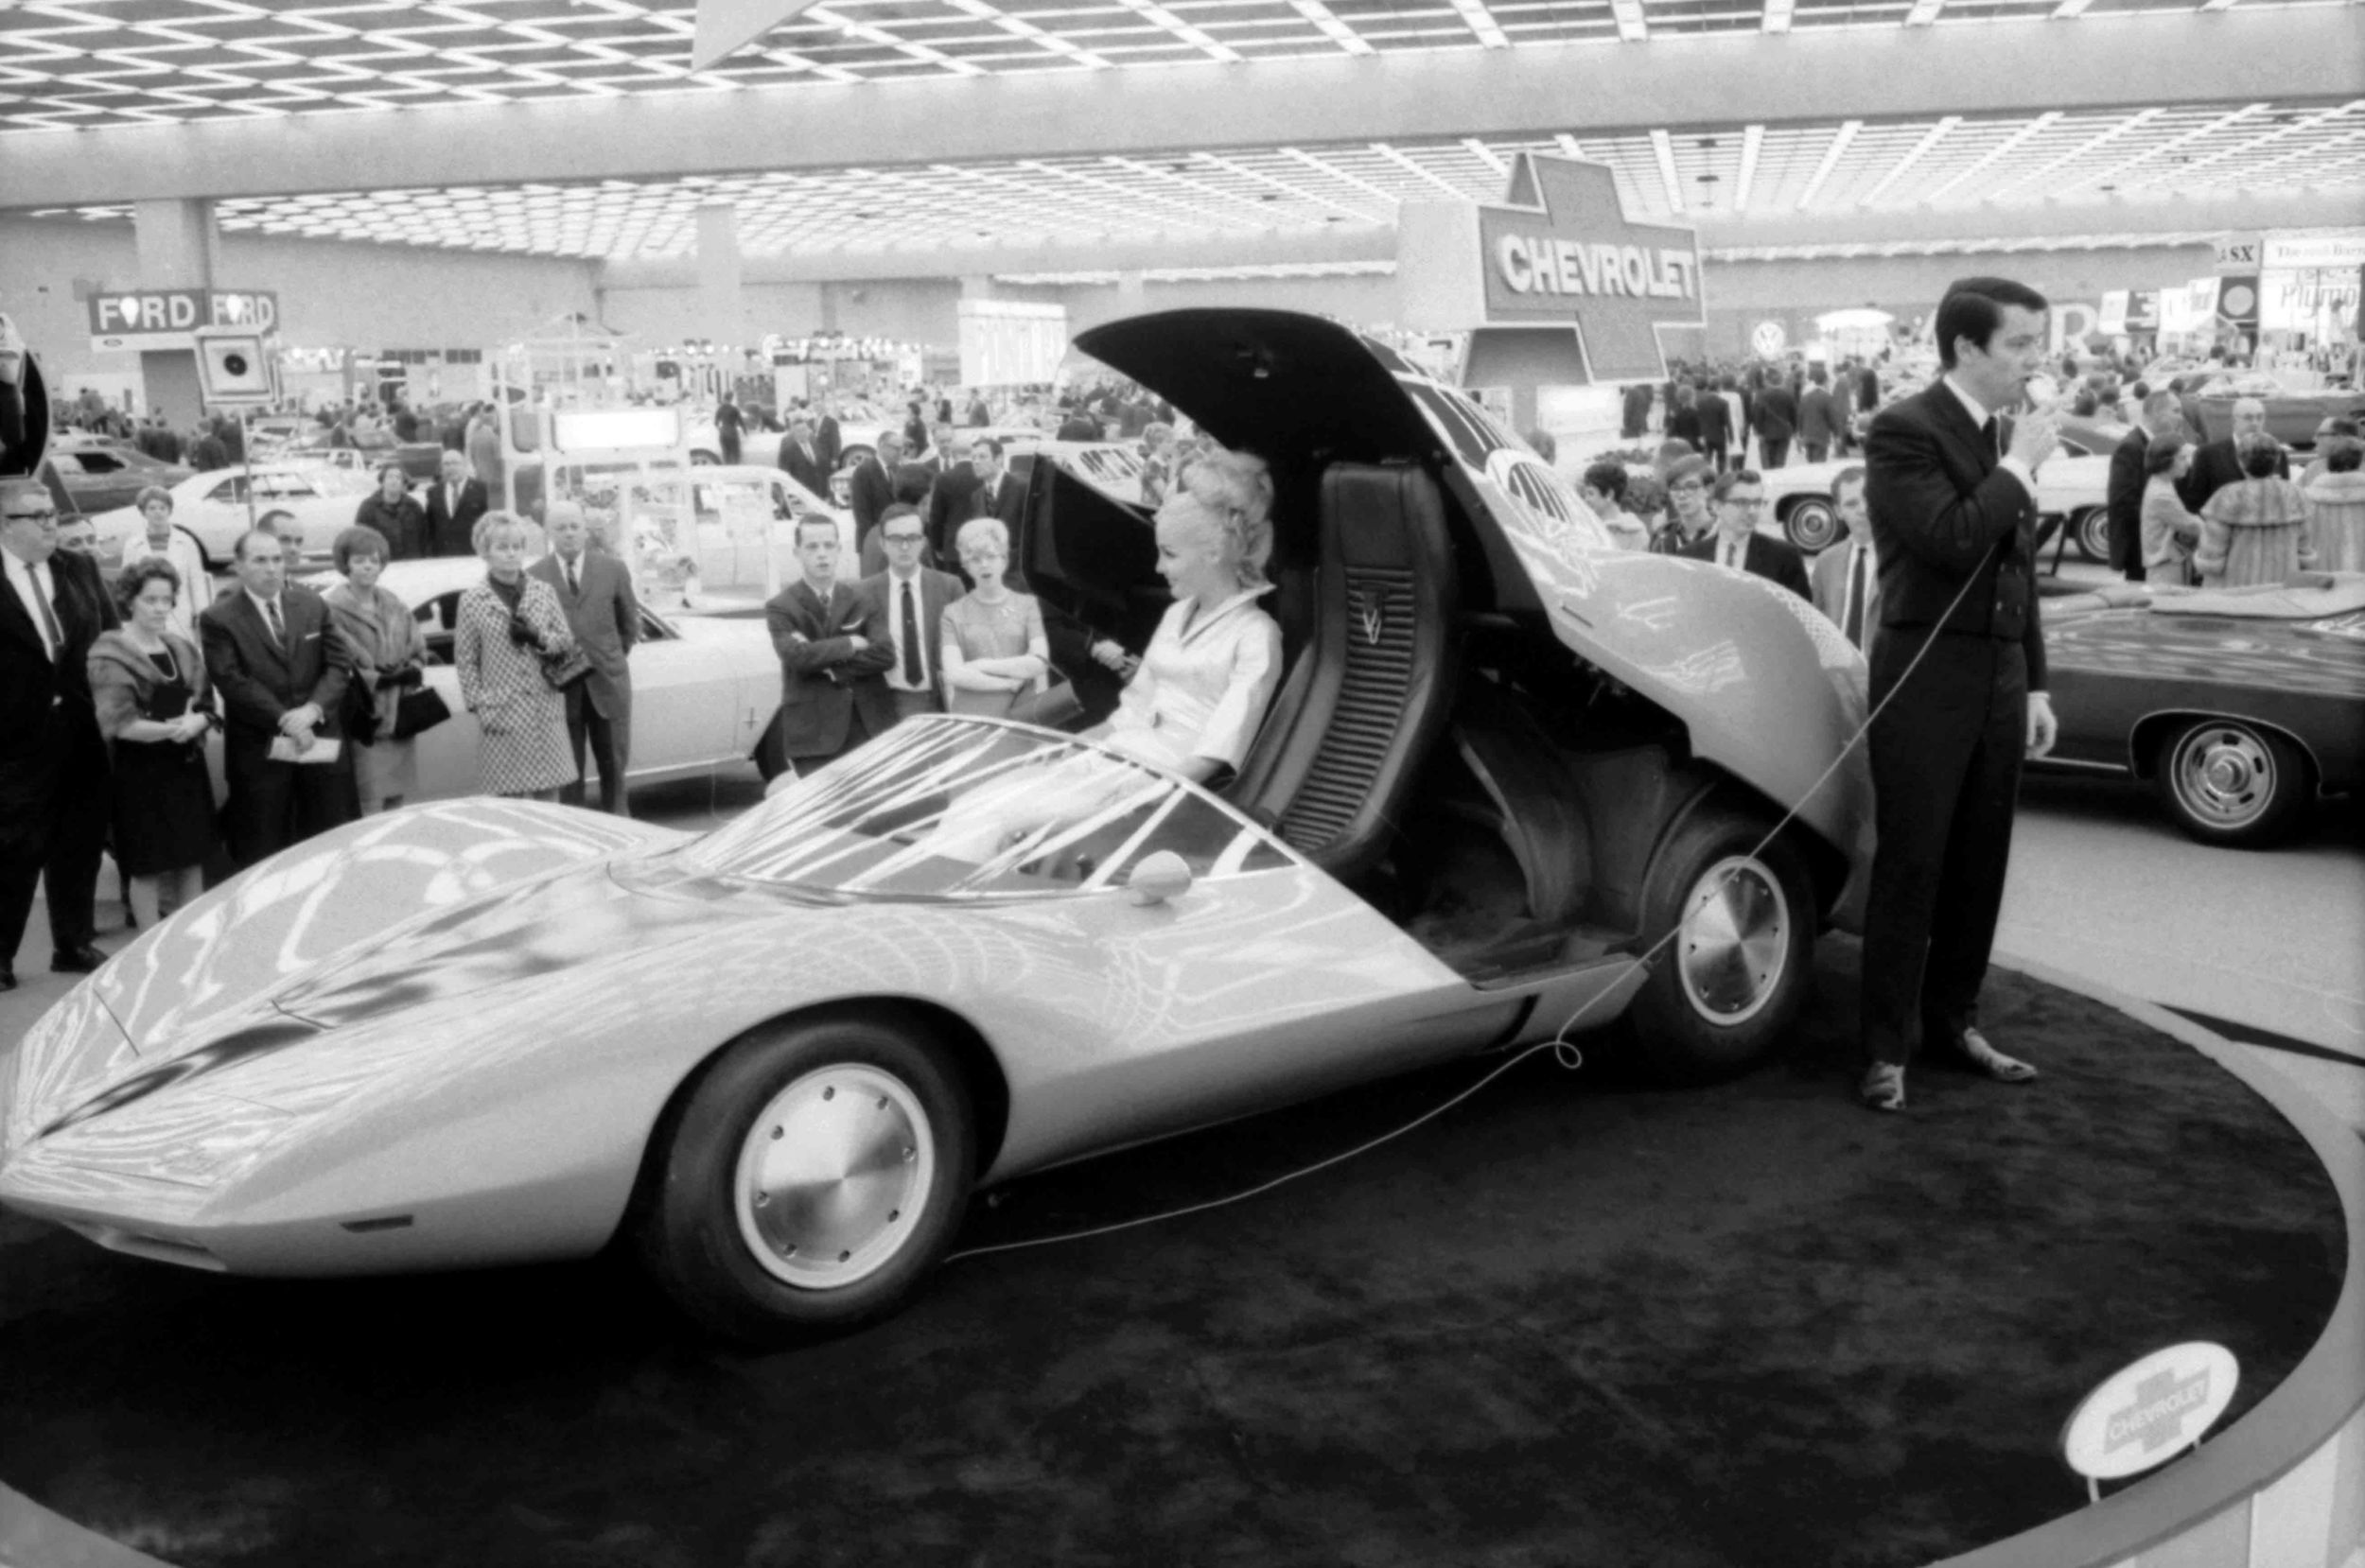 Chevrolet Astro Concept at the 1967 Detroit Motor Show. Image Copyright and Courtesy of GM Media Archive.